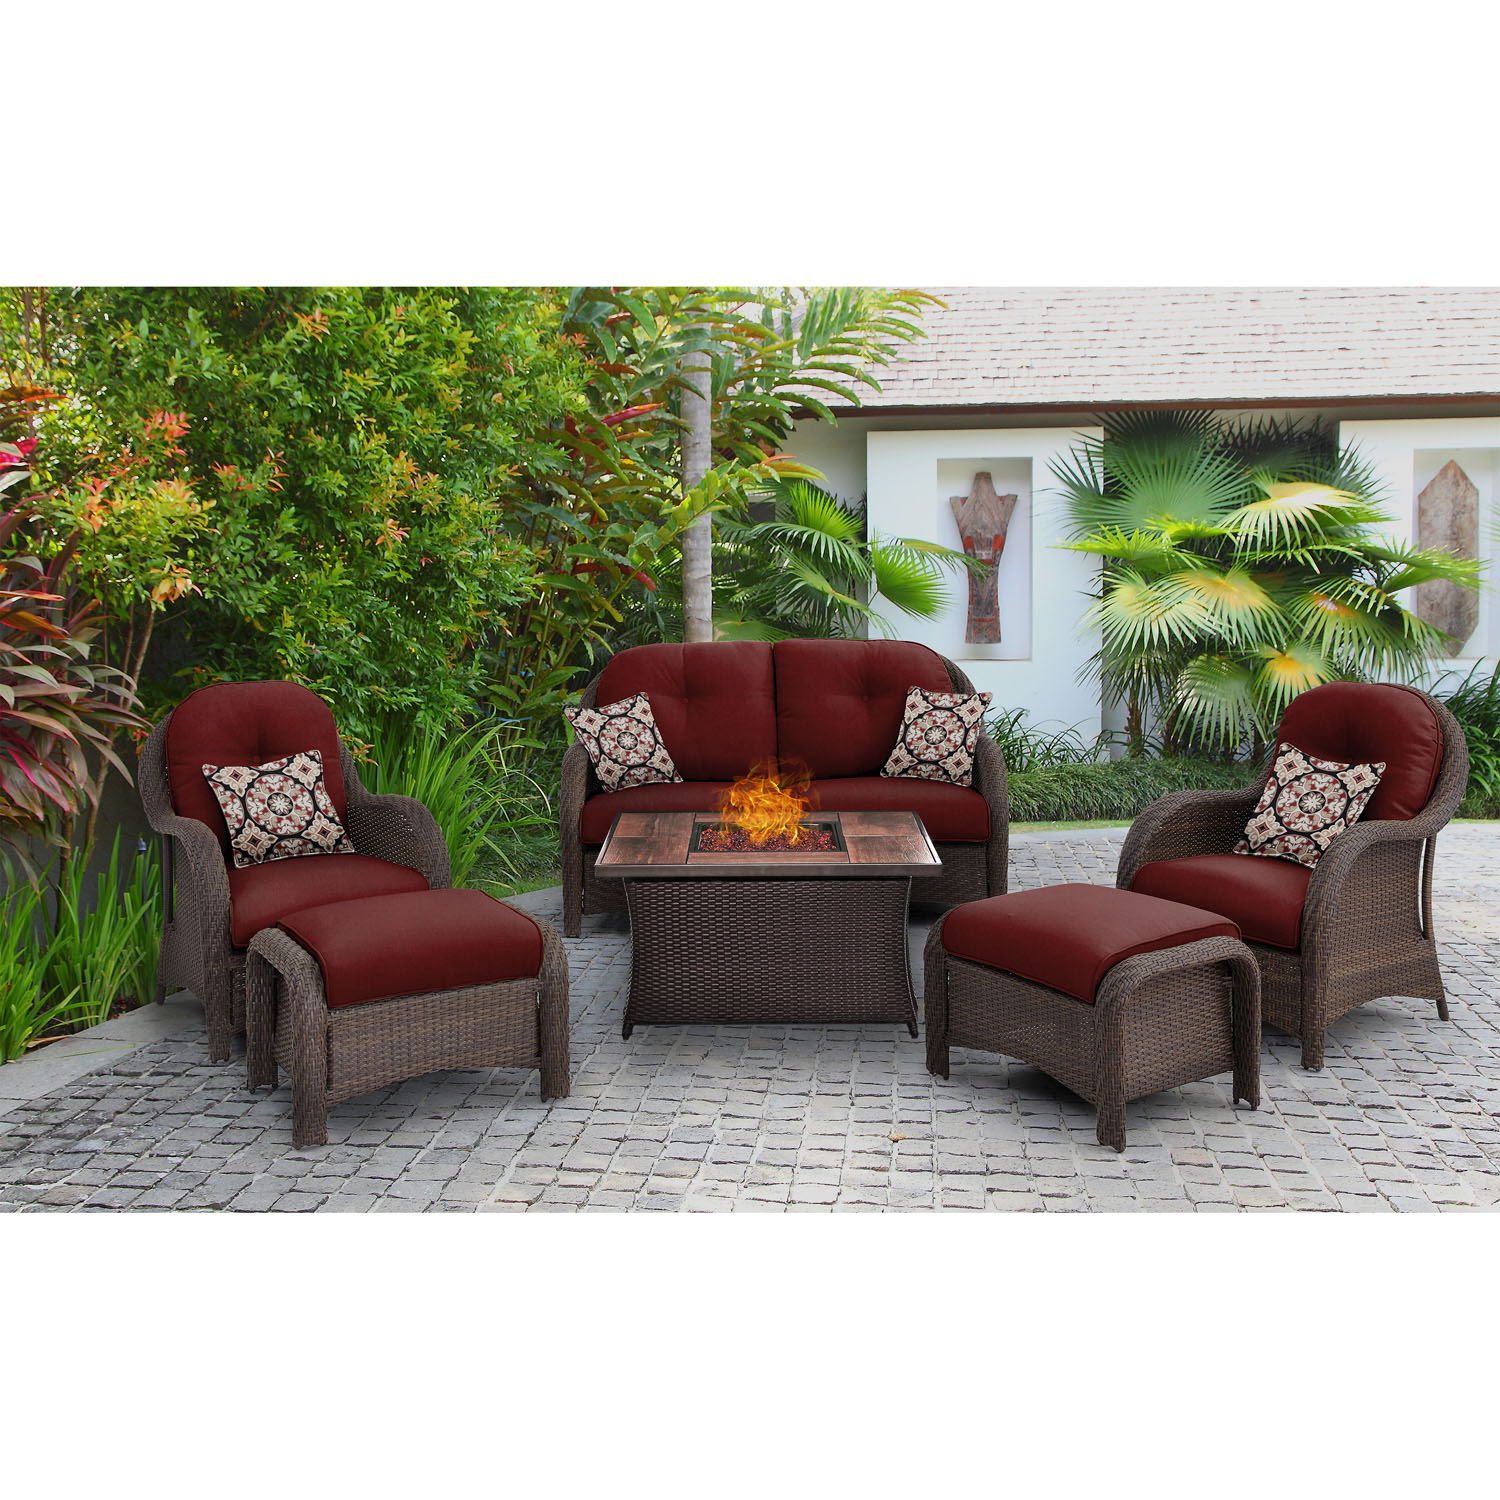 Hanover Newport 6-Piece Woven Fire Pit Set with Glazed Faux-Wood Tile Top